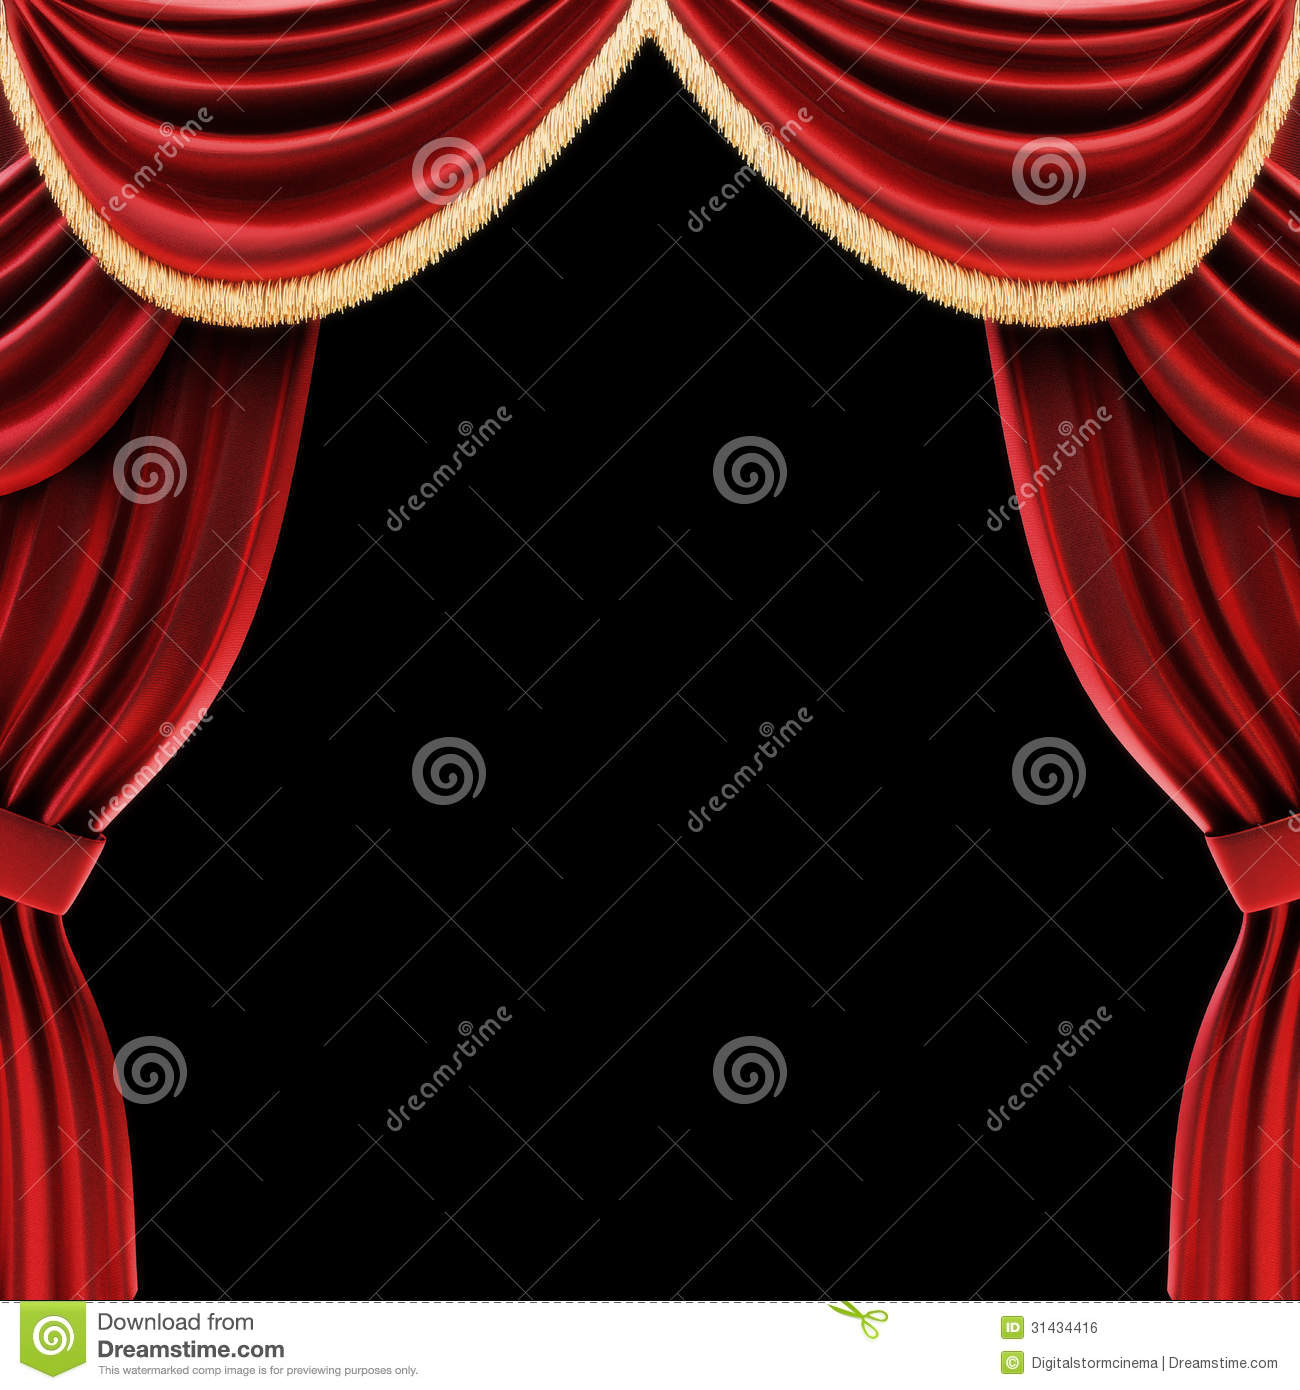 Open theater drapes or stage curtains royalty free stock image image - Royalty Free Stock Photo Black Curtains Drapes Open Stage Theater